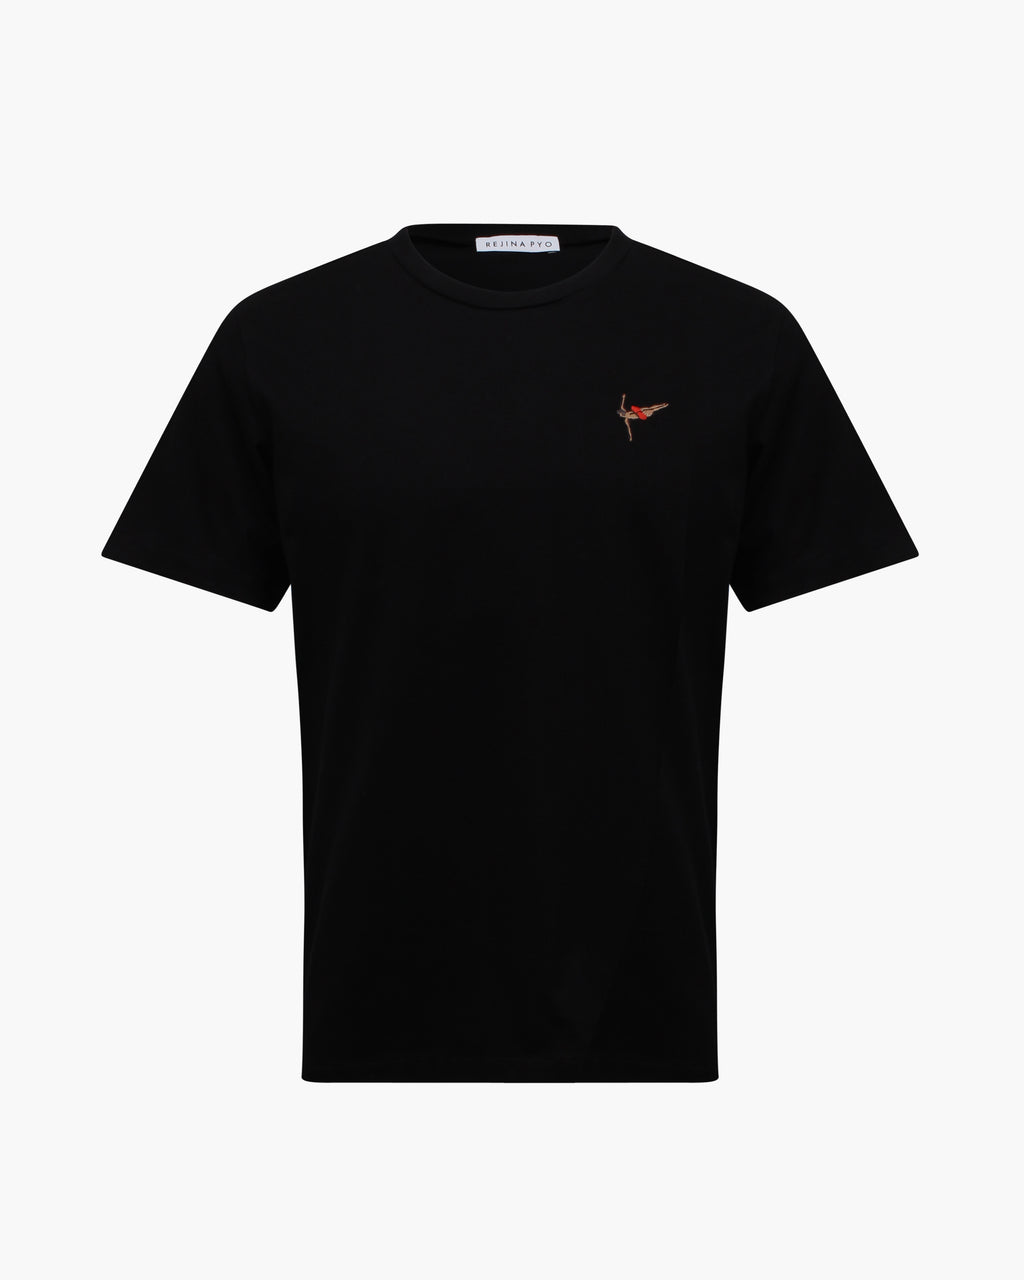 Rhys T-shirt Cotton Jersey Black Embroidery - WEBSHOP EXCLUSIVE